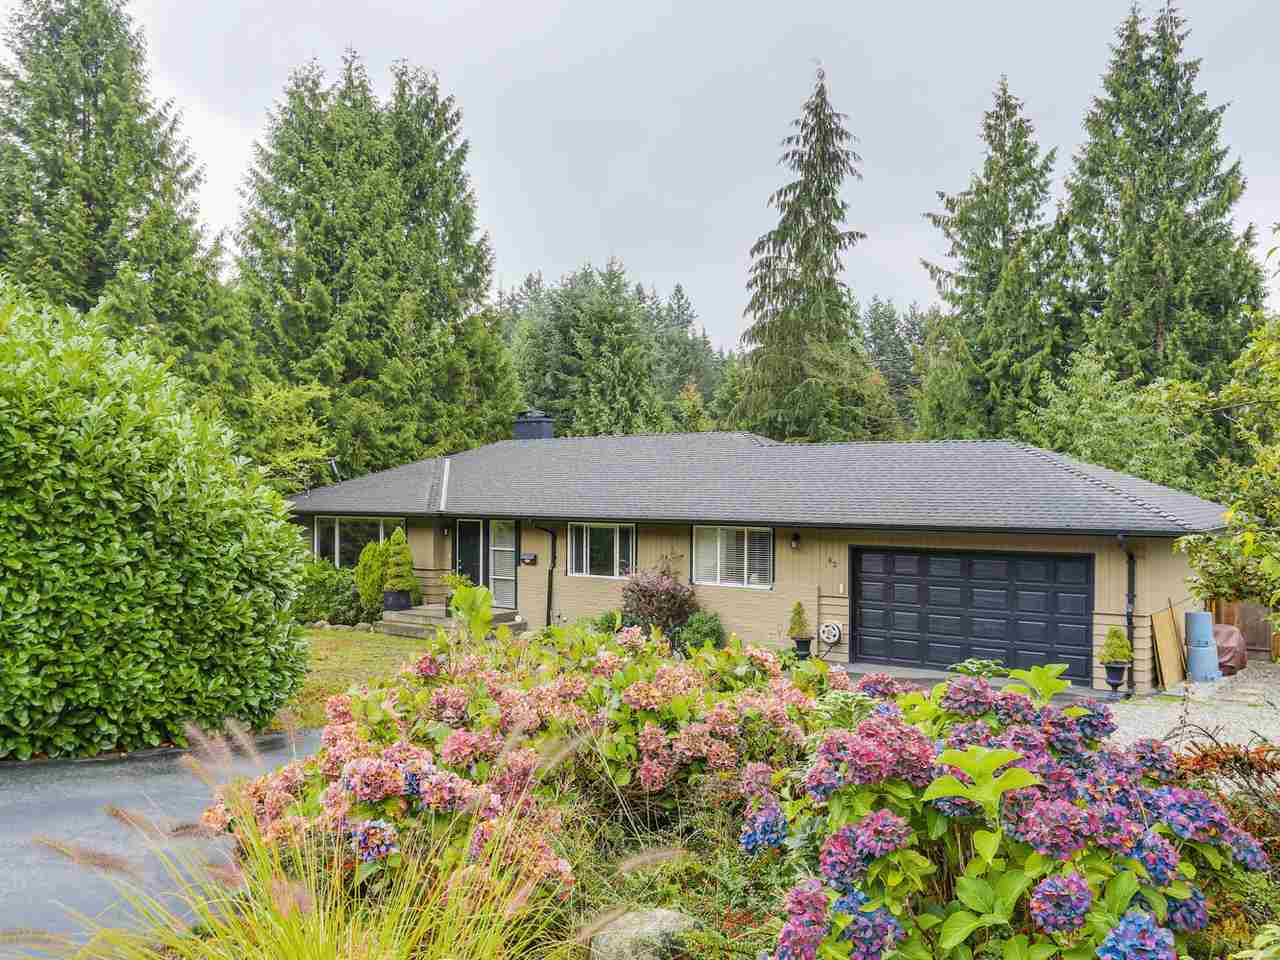 82 GLENGARRY CRESCENT, West Vancouver, BC V7S 1B5